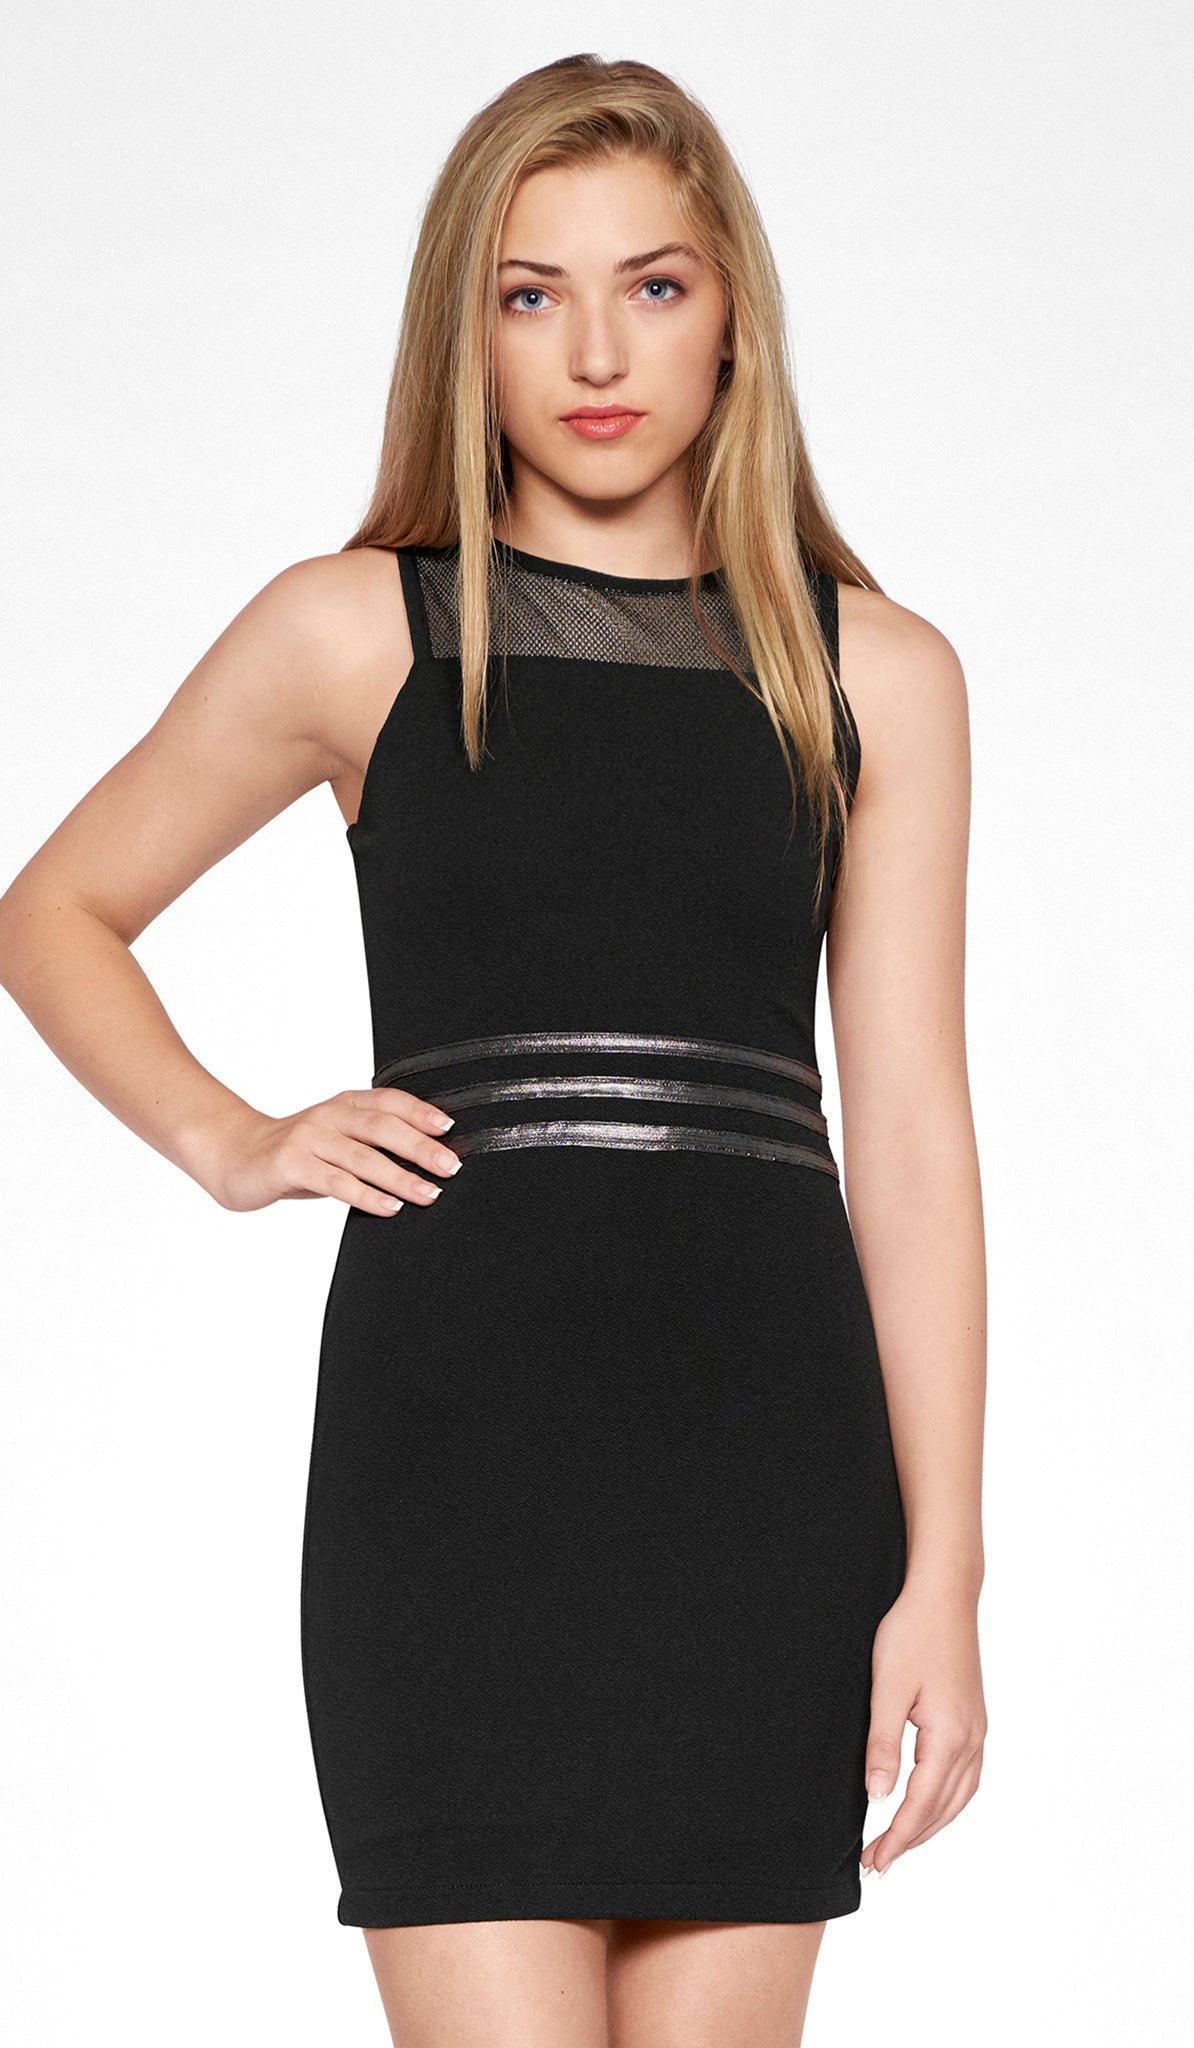 Fashion week Silver and Black dresses for juniors for girls